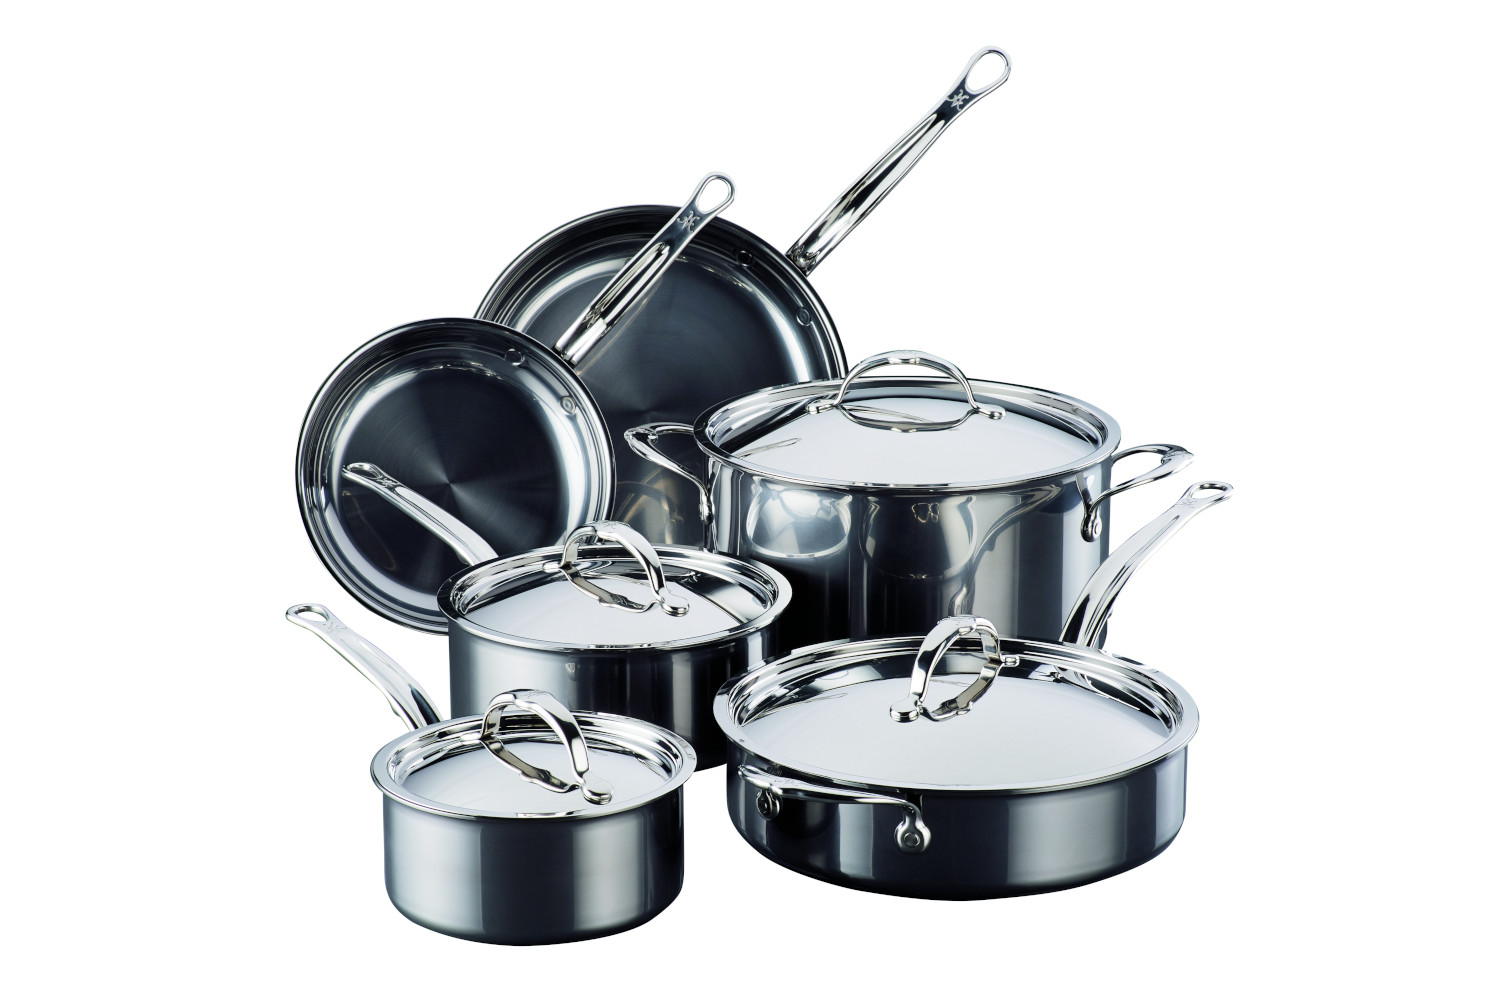 Hestan NanoBond Stainless Steel 10 piece Cookware Set